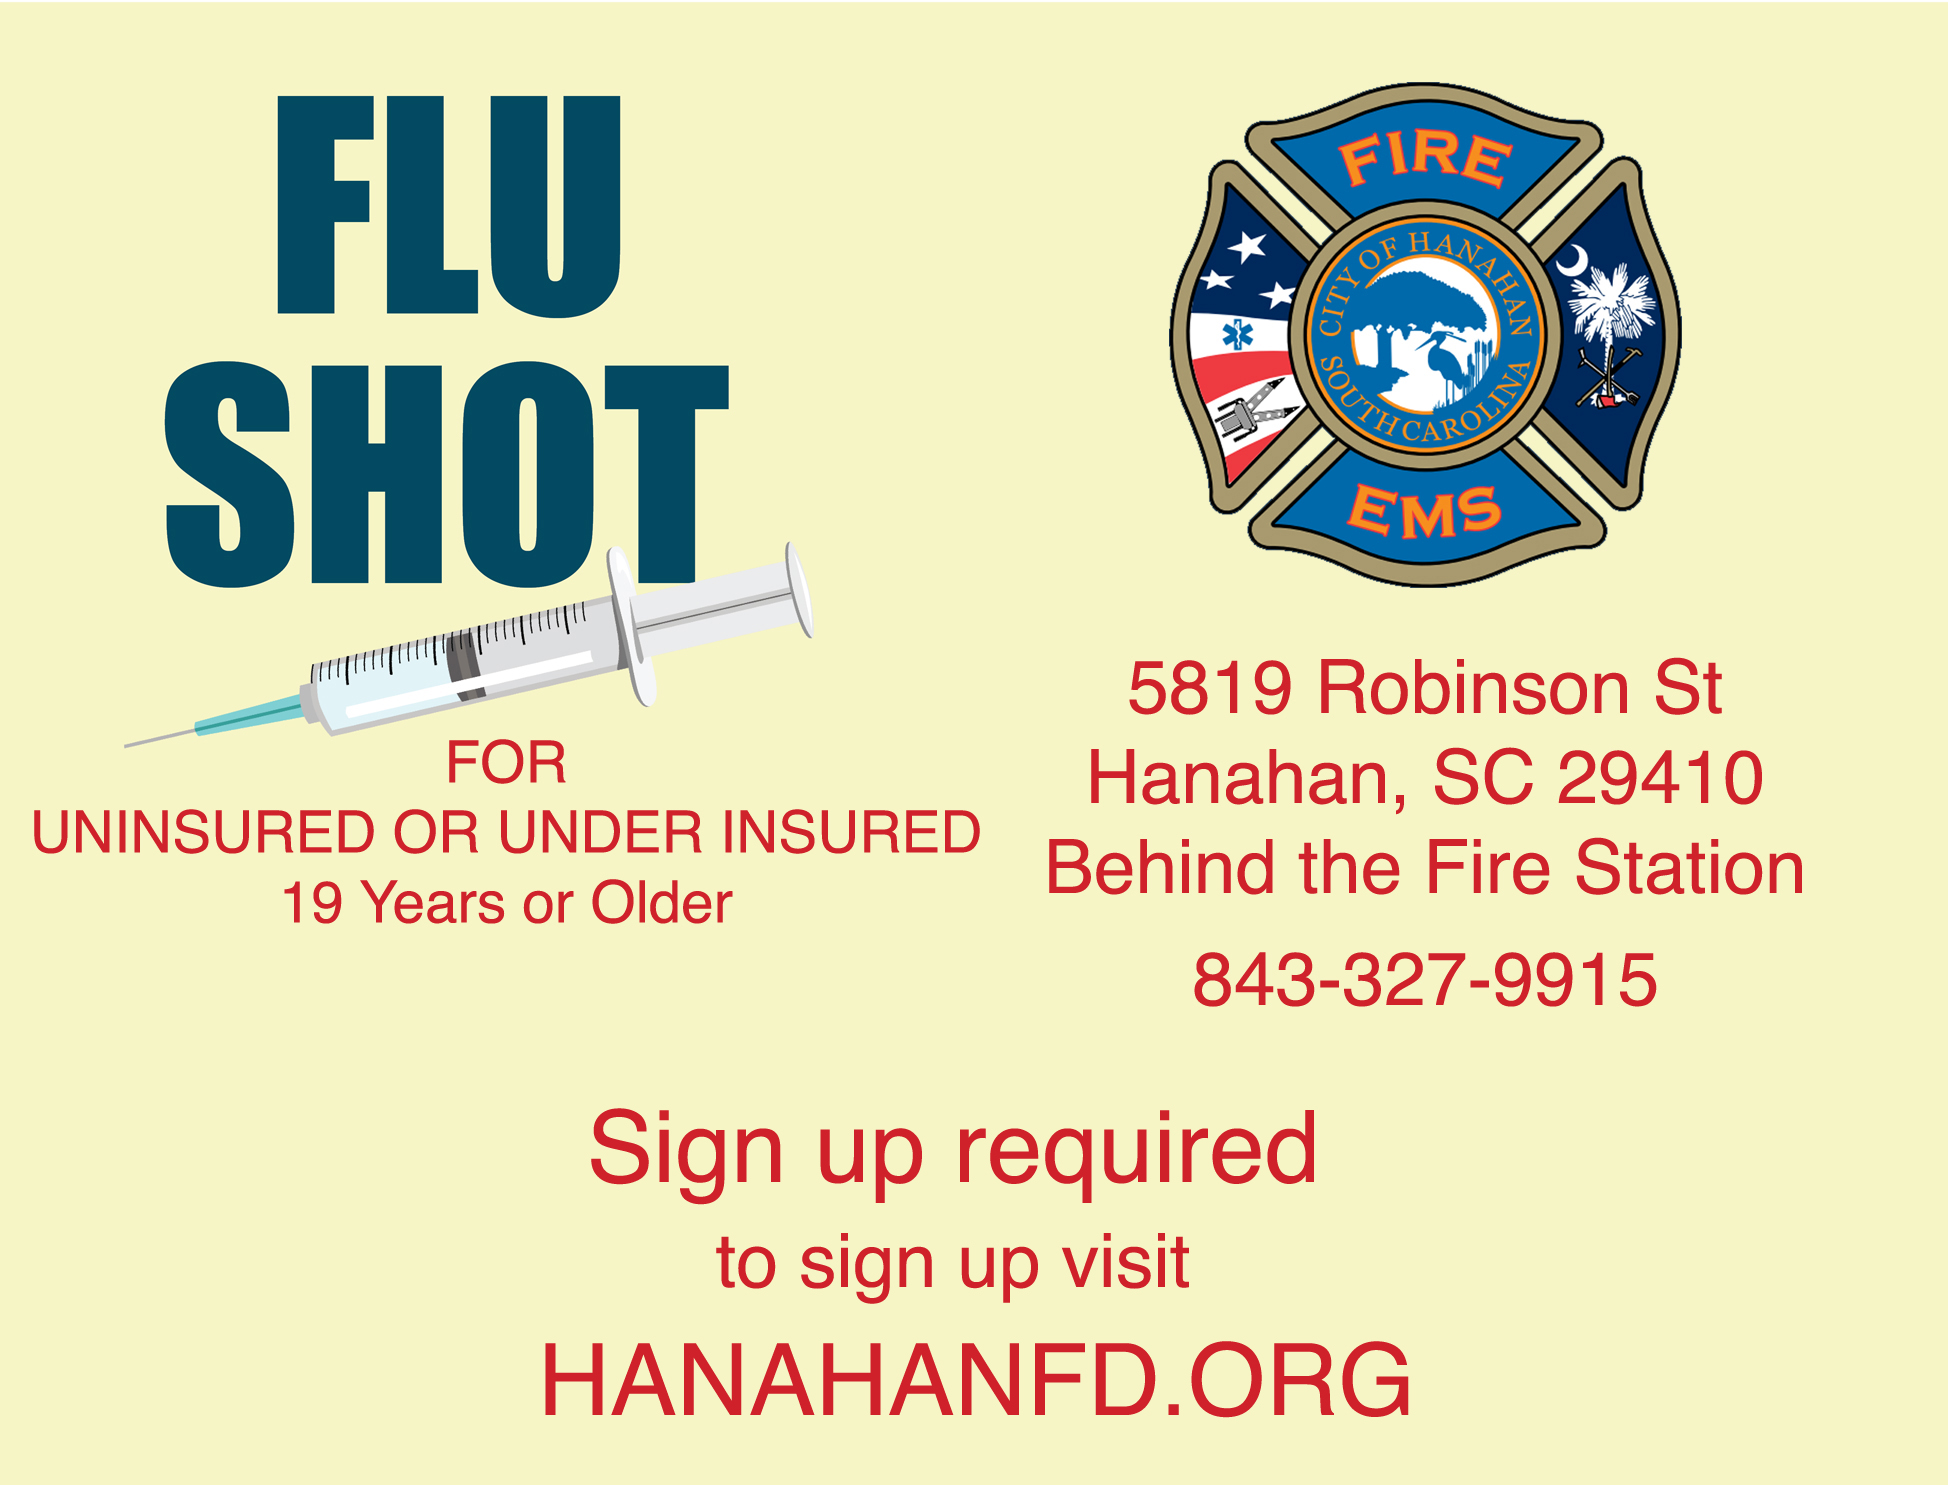 Flue Shots available